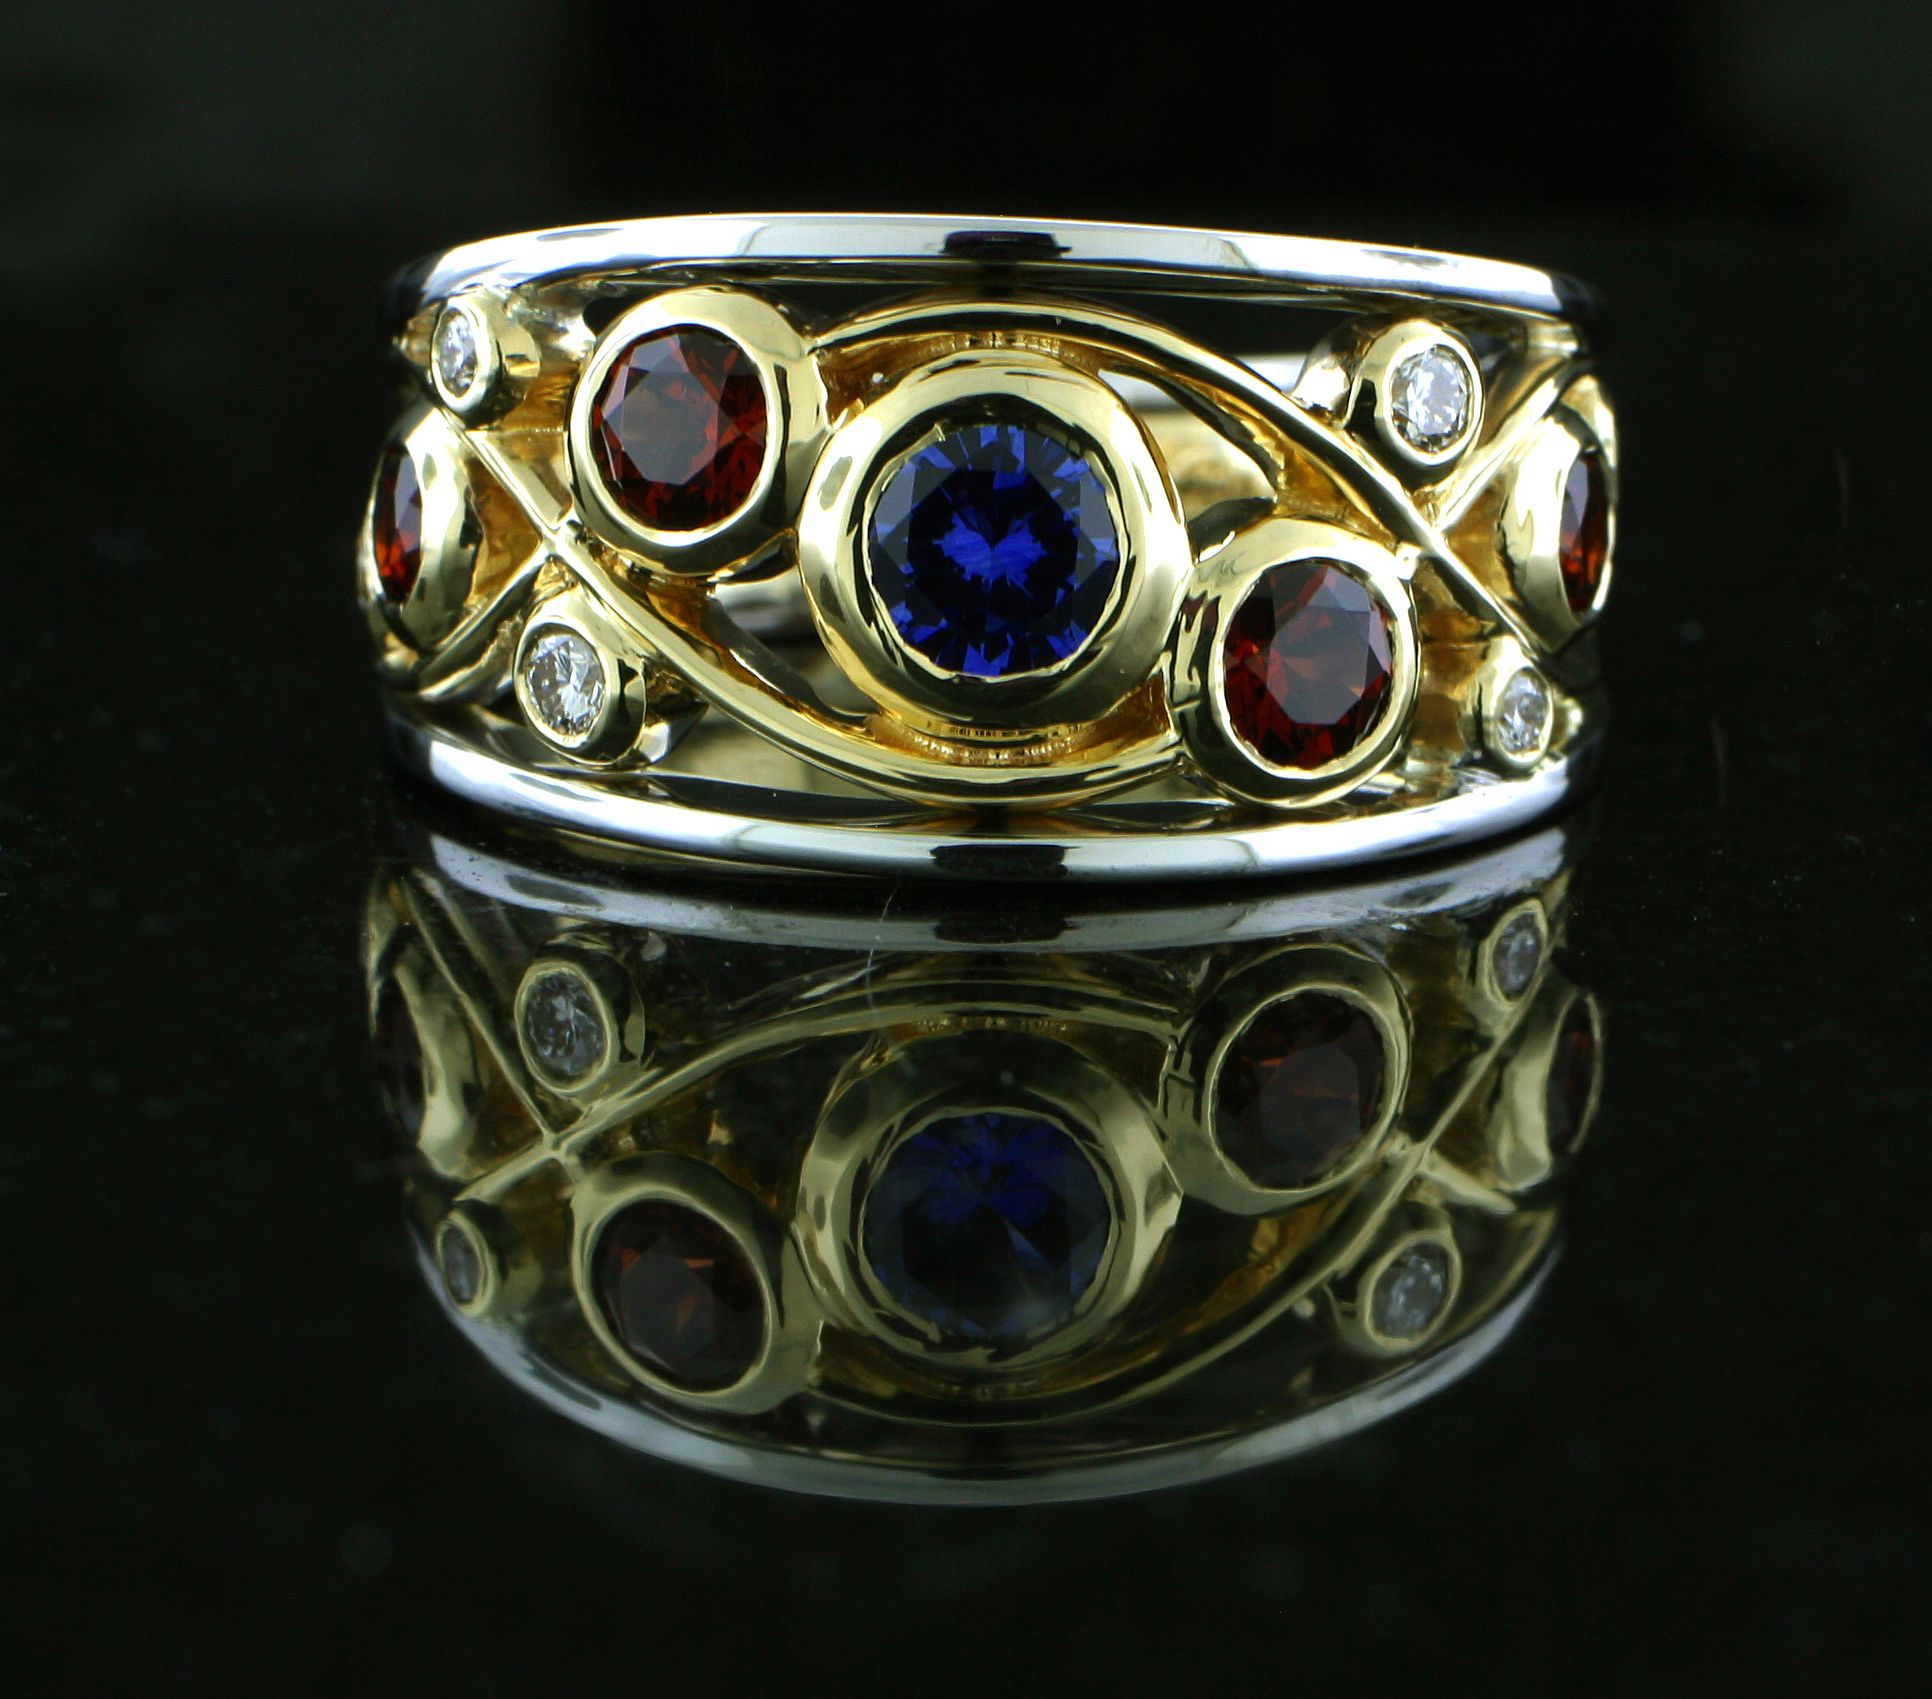 14k Two Tone Ring Was Custom Fabricated And Hand Made With